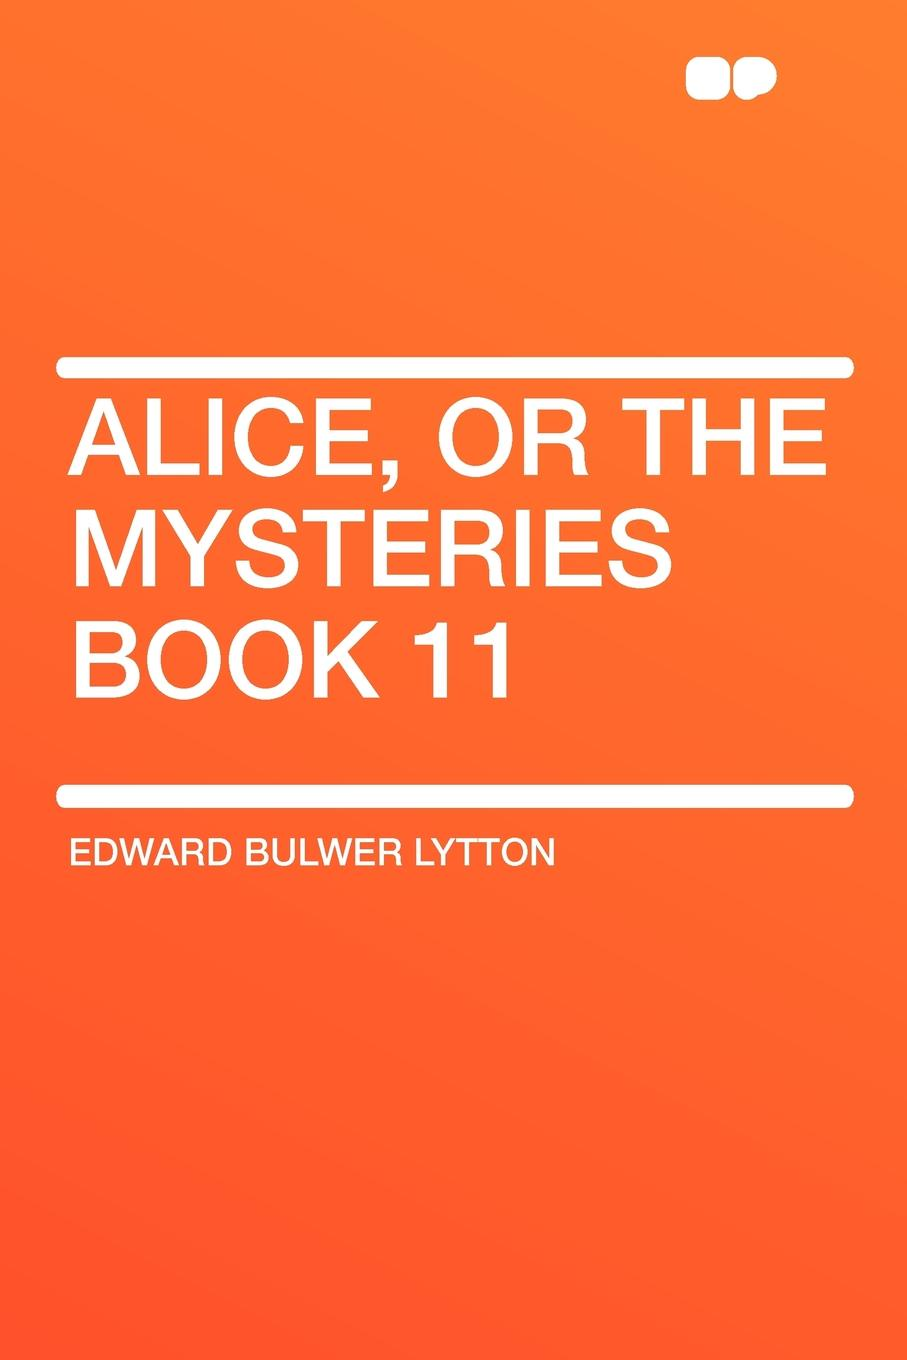 Edward Bulwer Lytton Alice, or the Mysteries Book 11 edward bulwer lytton alice or the mysteries